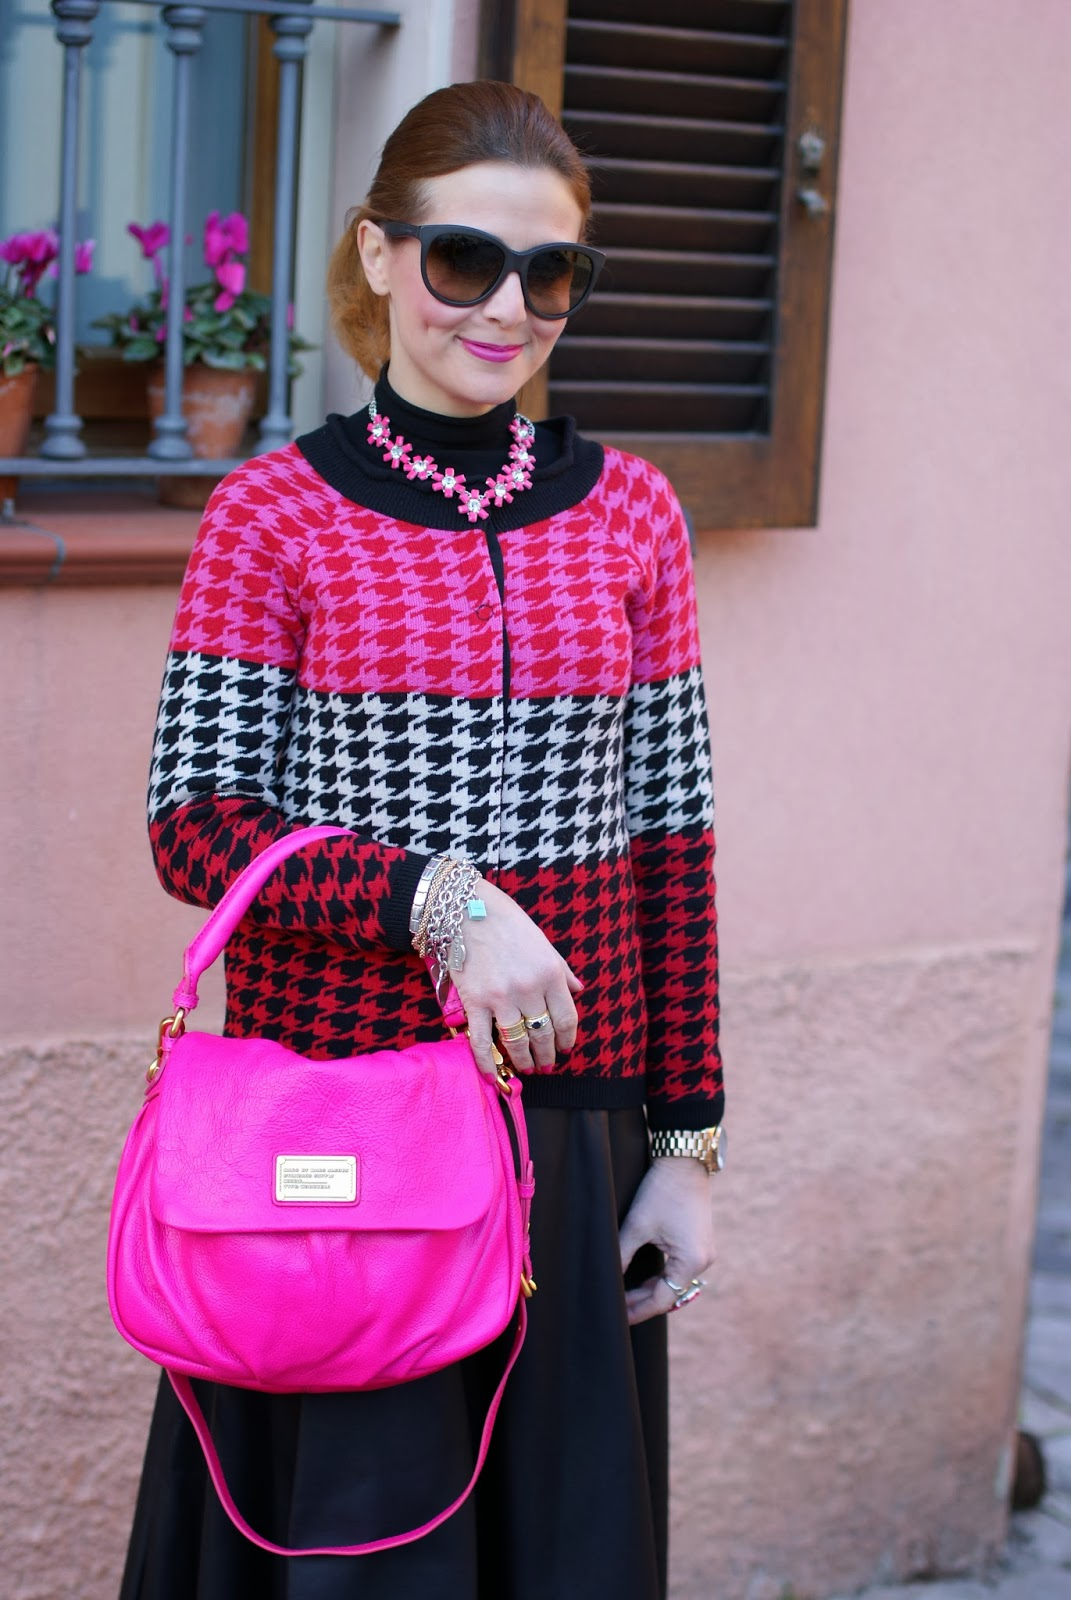 Marc by Marc Jacobs lil ukita pink bag, pied de poule cardigan, sodini necklace, fashion and cookies, fashion blogger